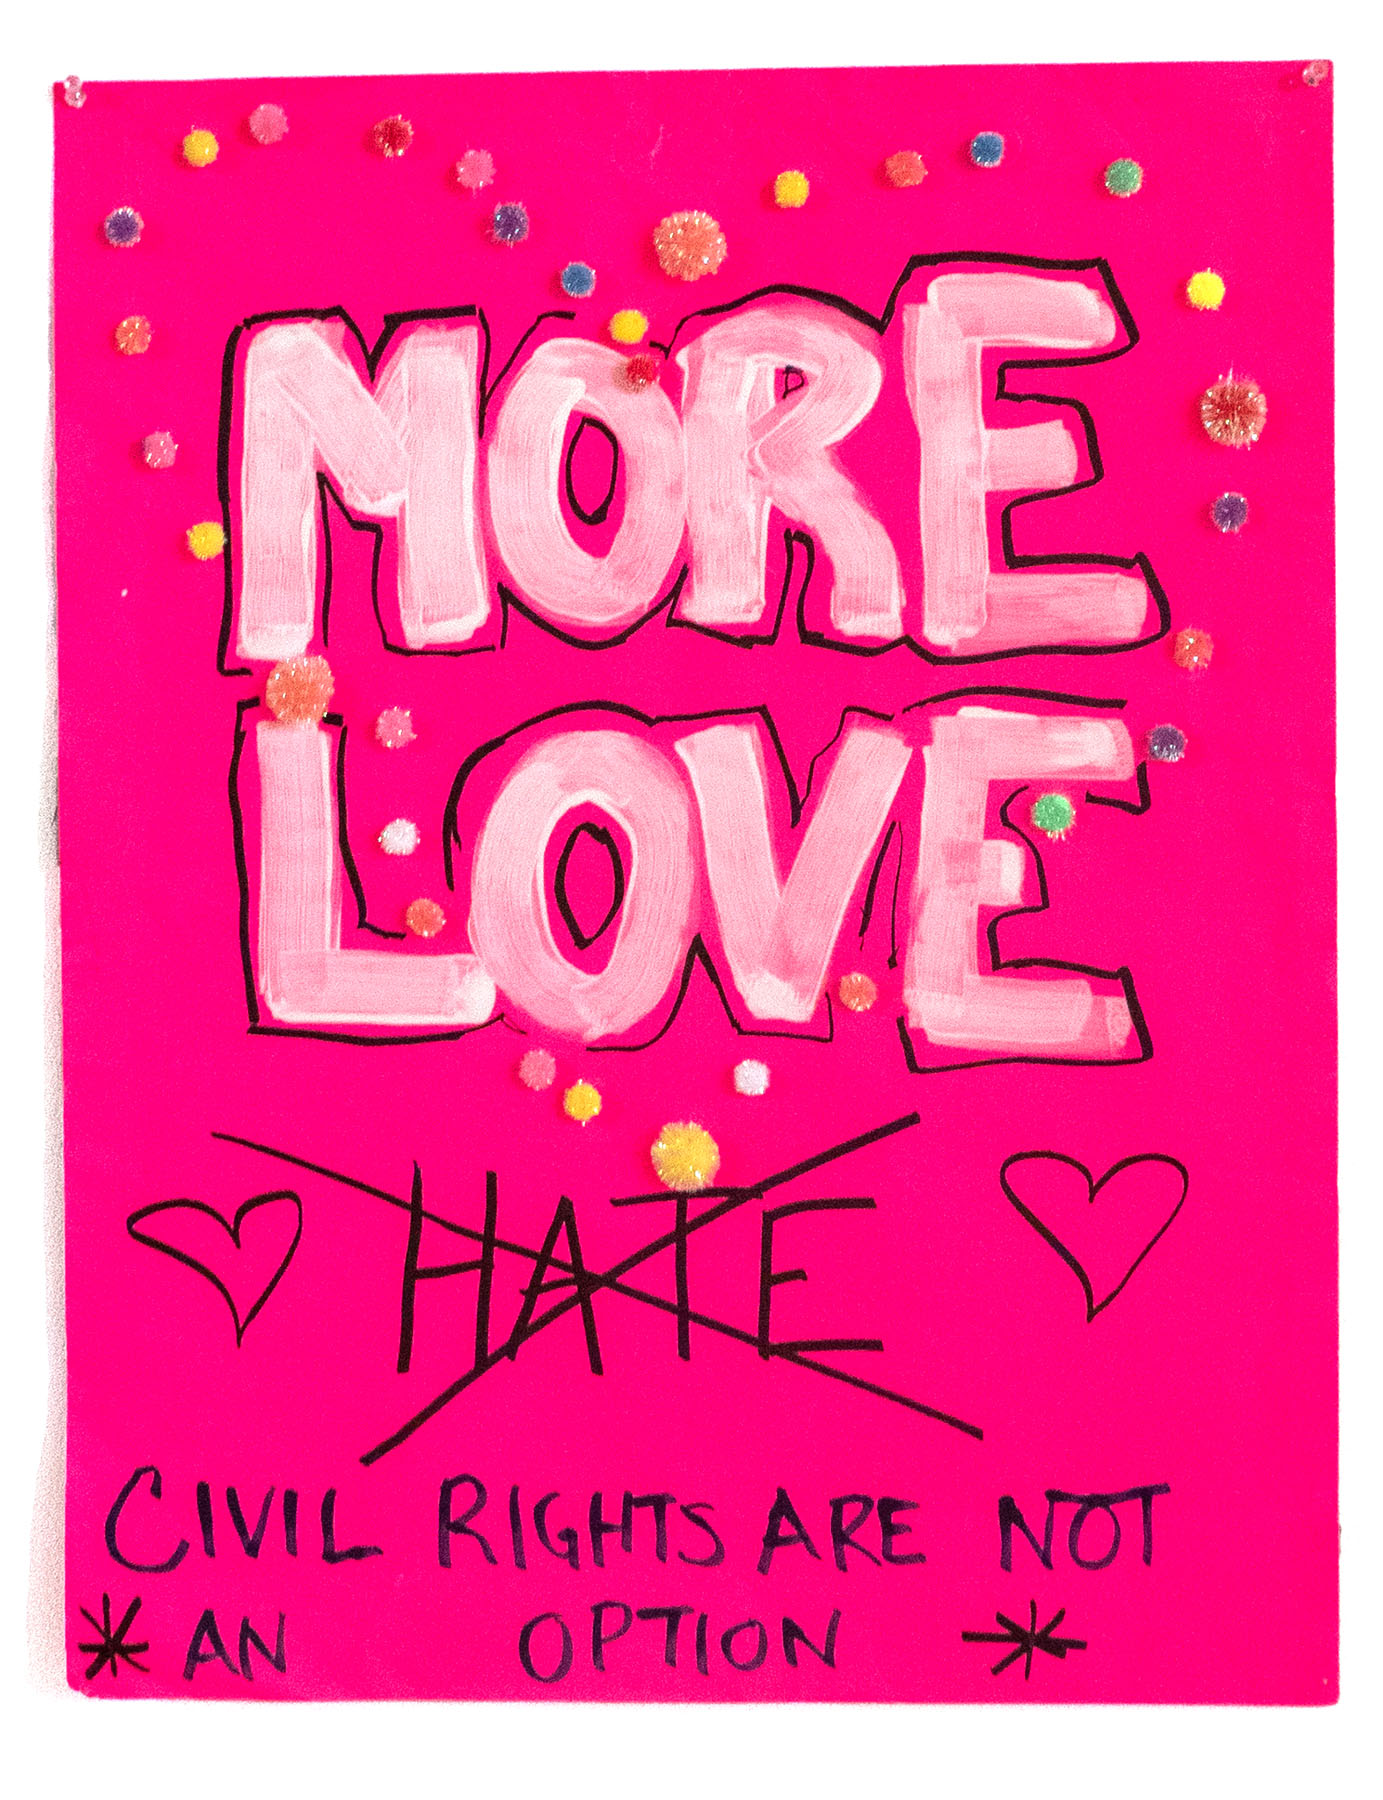 MORE LOVE X HATE